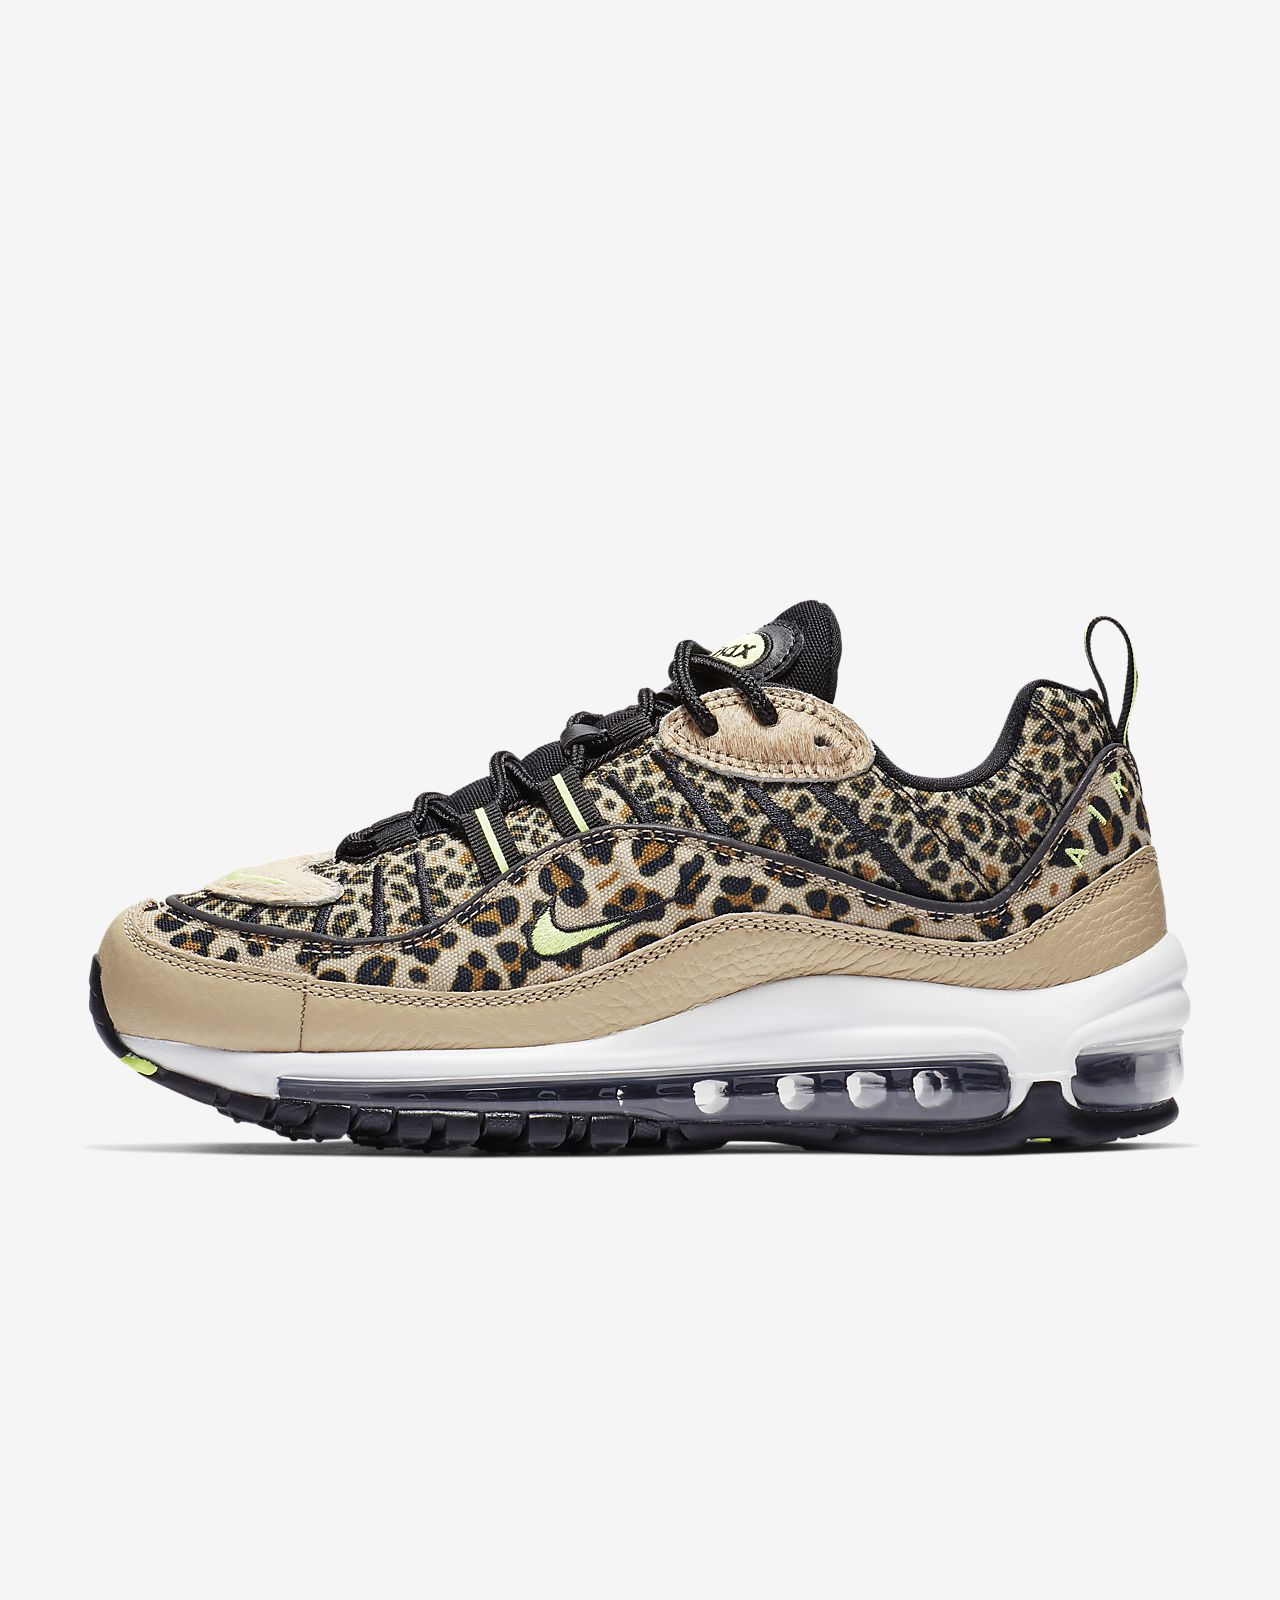 6e1e3569b54 Nike Air Max 98 Premium Animal Women s Shoe. Nike.com GB